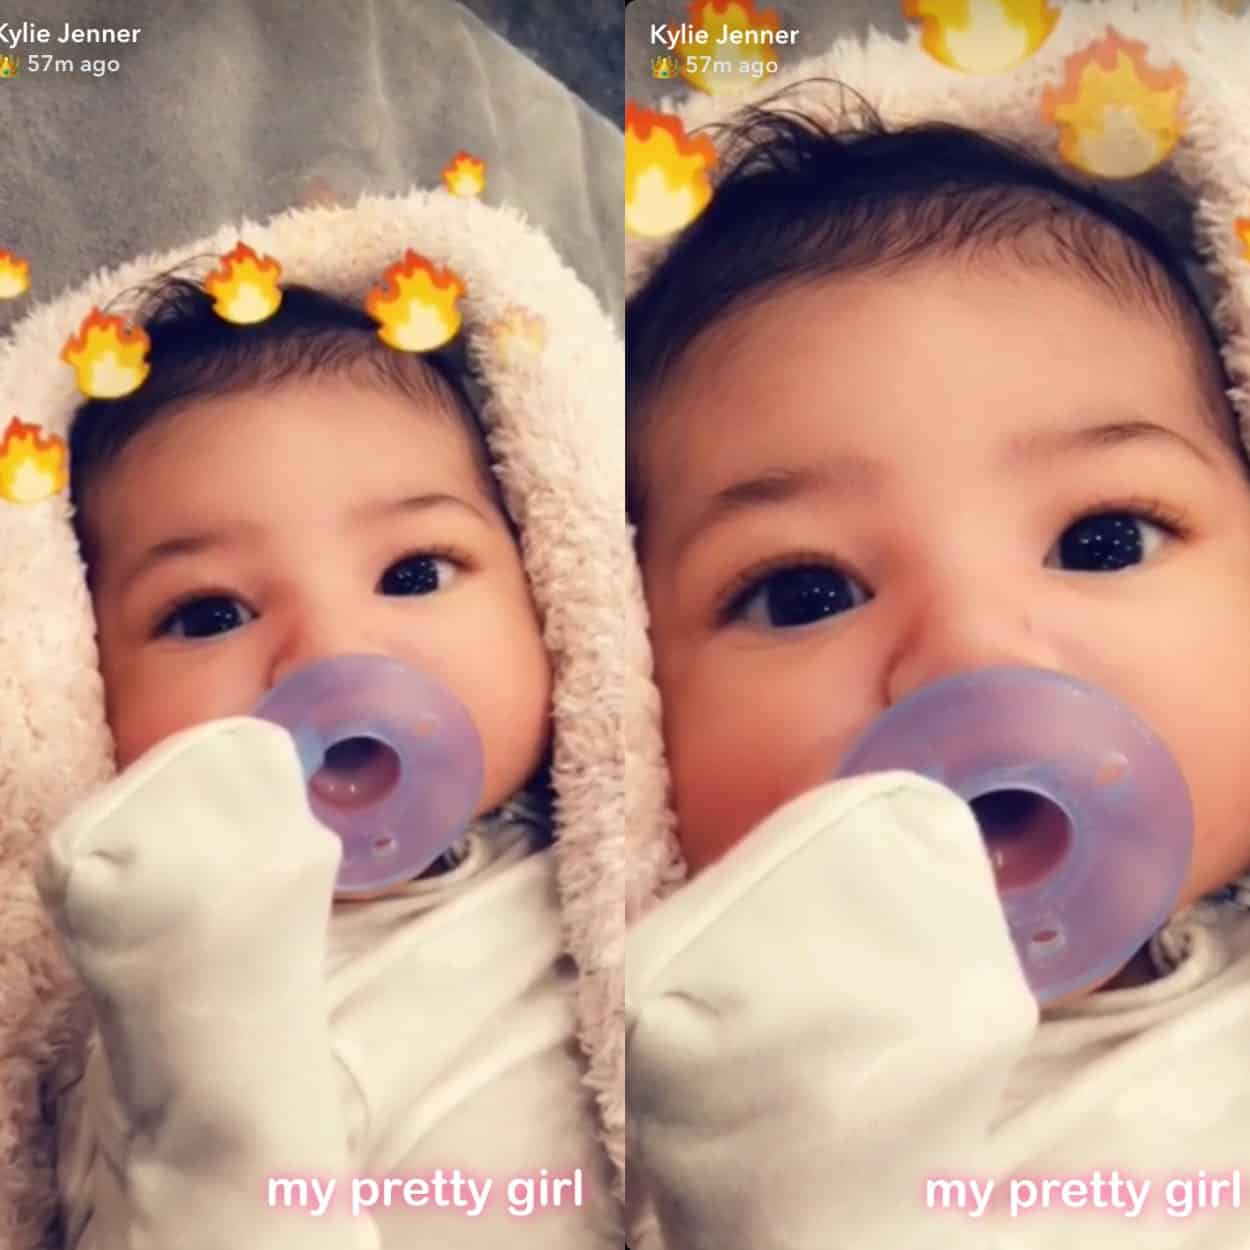 Stormi Webster Photos of Kylie Jenner's baby